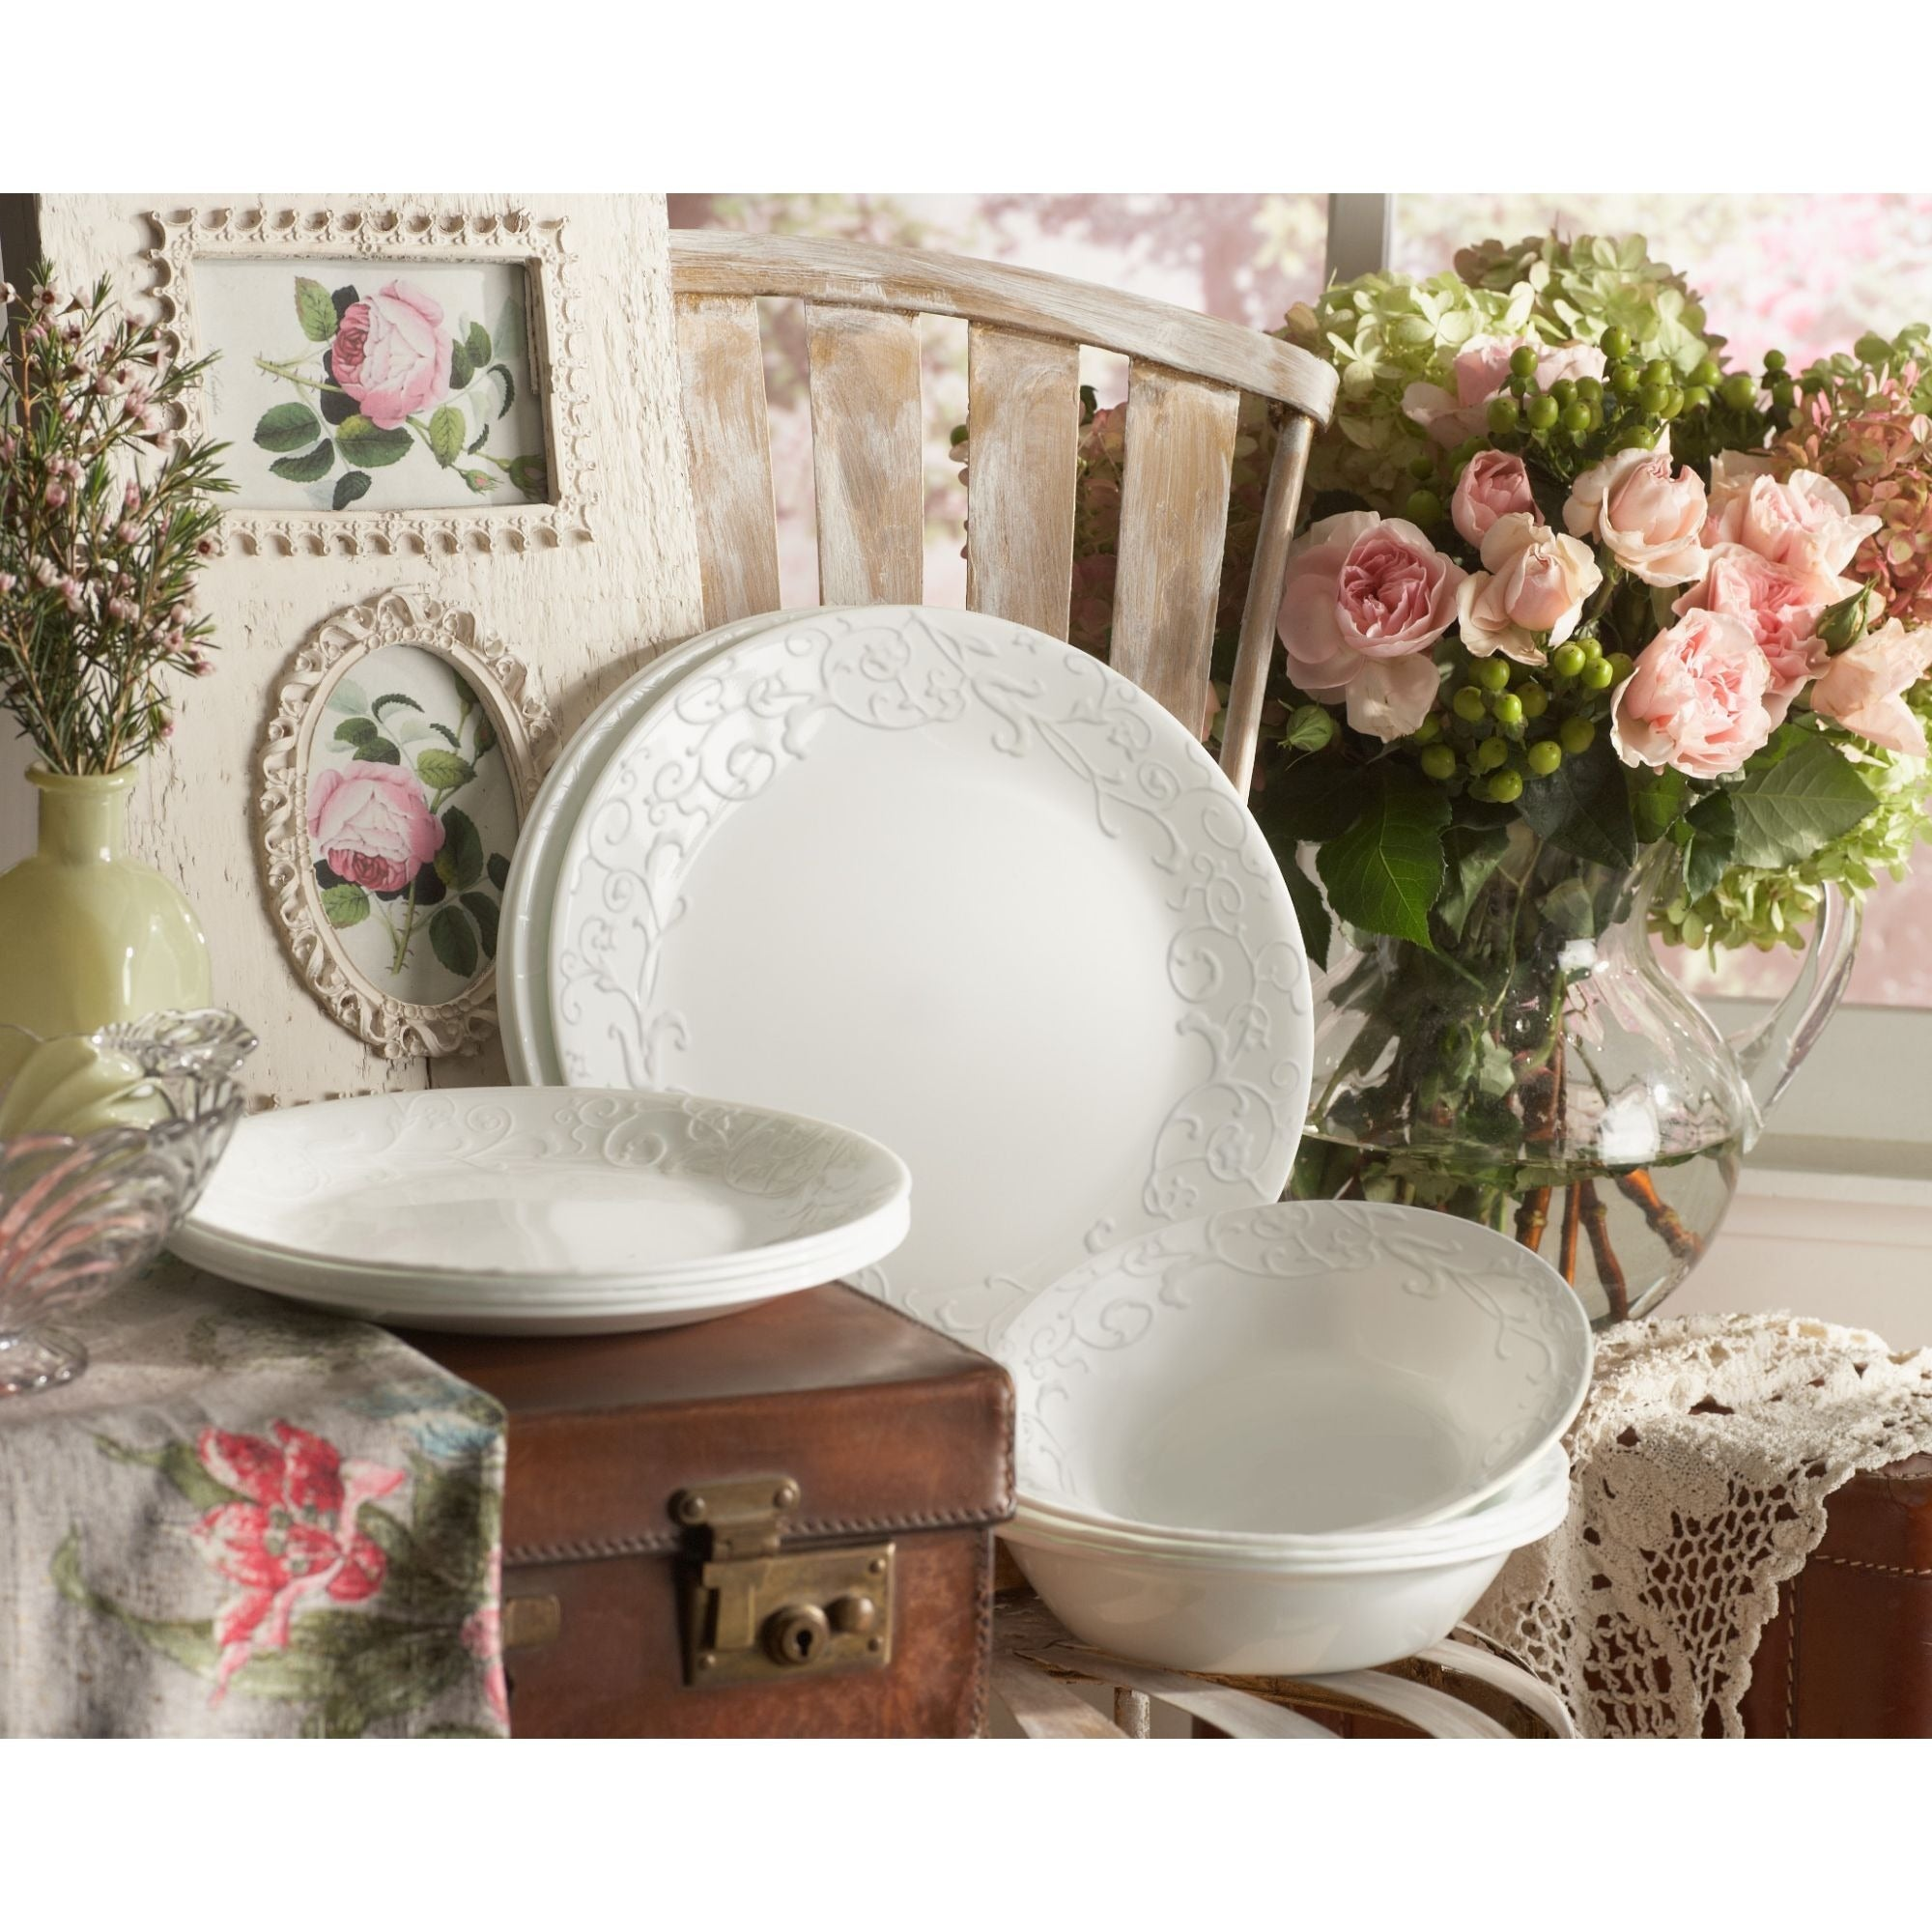 Corelle Embossed Bella Faenza White Vitrelle Glass 16-piece Dinnerware Set - Free Shipping Today - Overstock - 17245939  sc 1 st  Overstock.com & Corelle Embossed Bella Faenza White Vitrelle Glass 16-piece ...